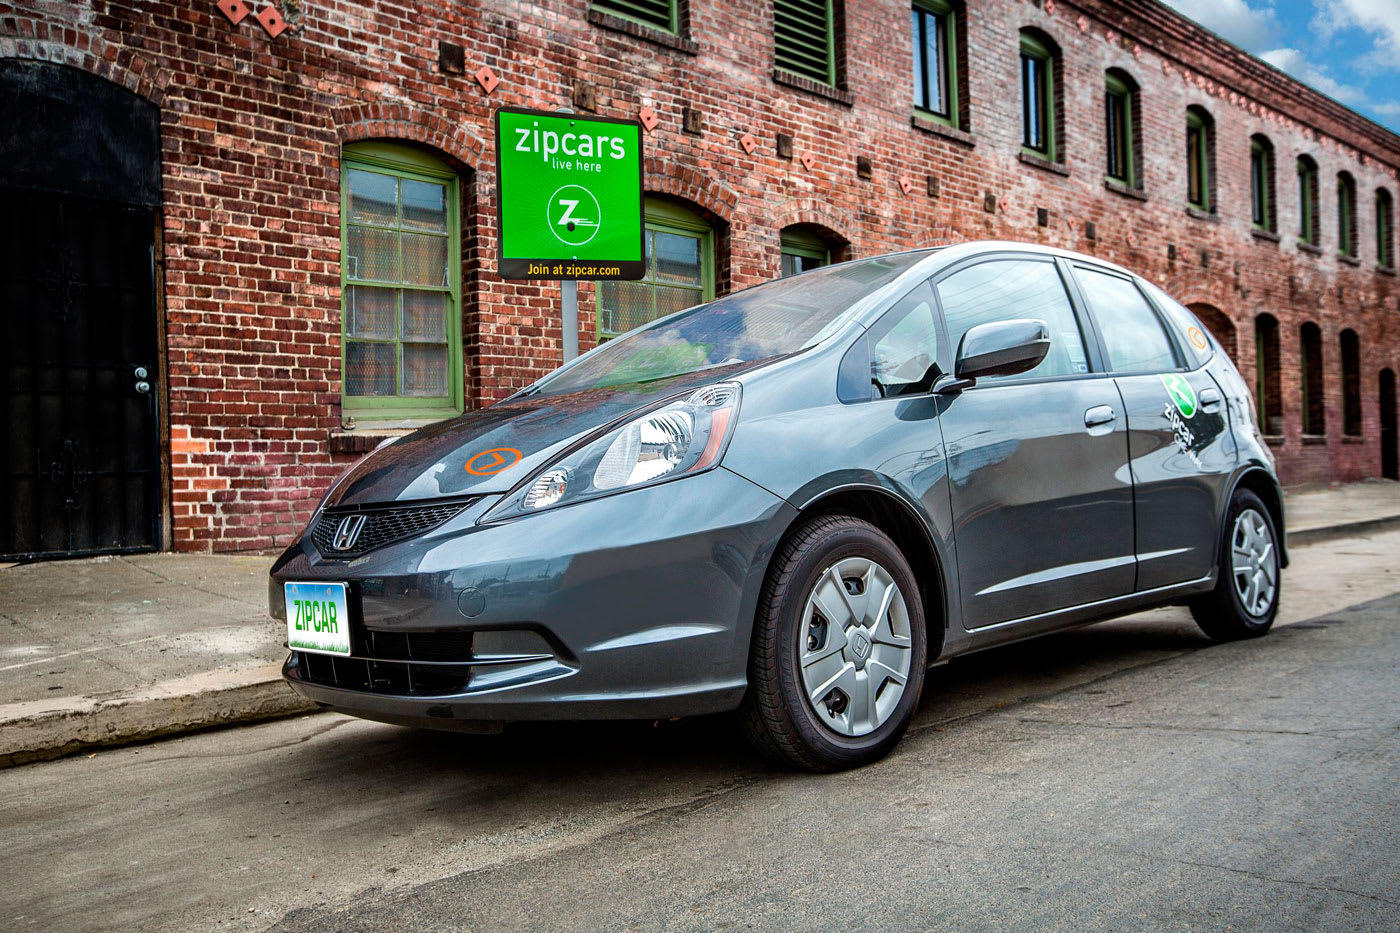 Zipcar Tests Pay Per Mile Pricing System For Short Trips